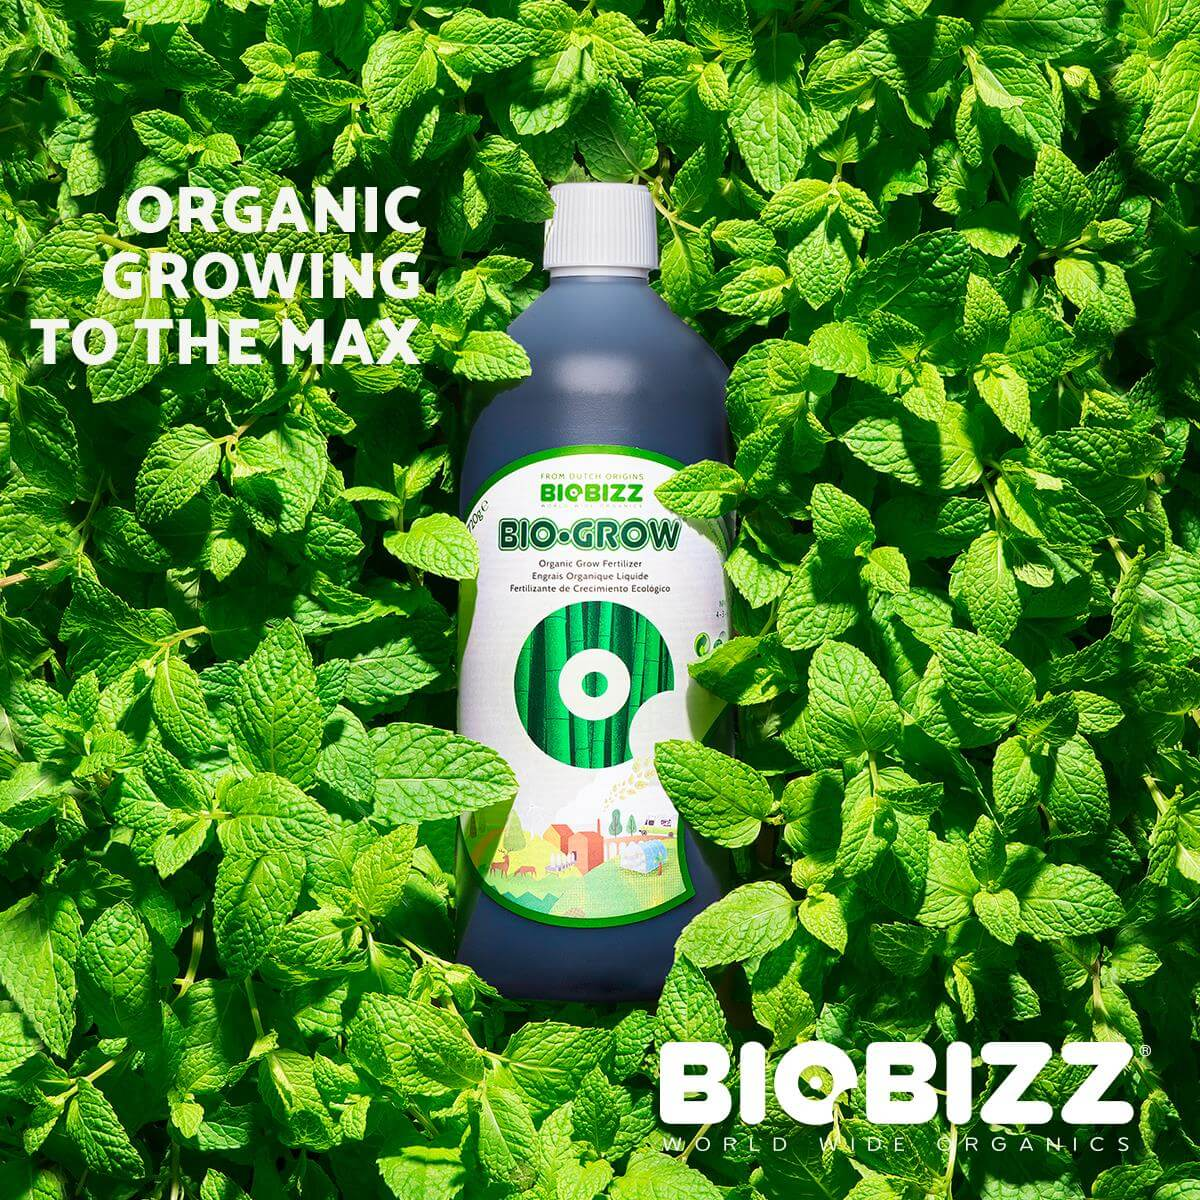 Bio-Grow organic growing to the max by Biobizz